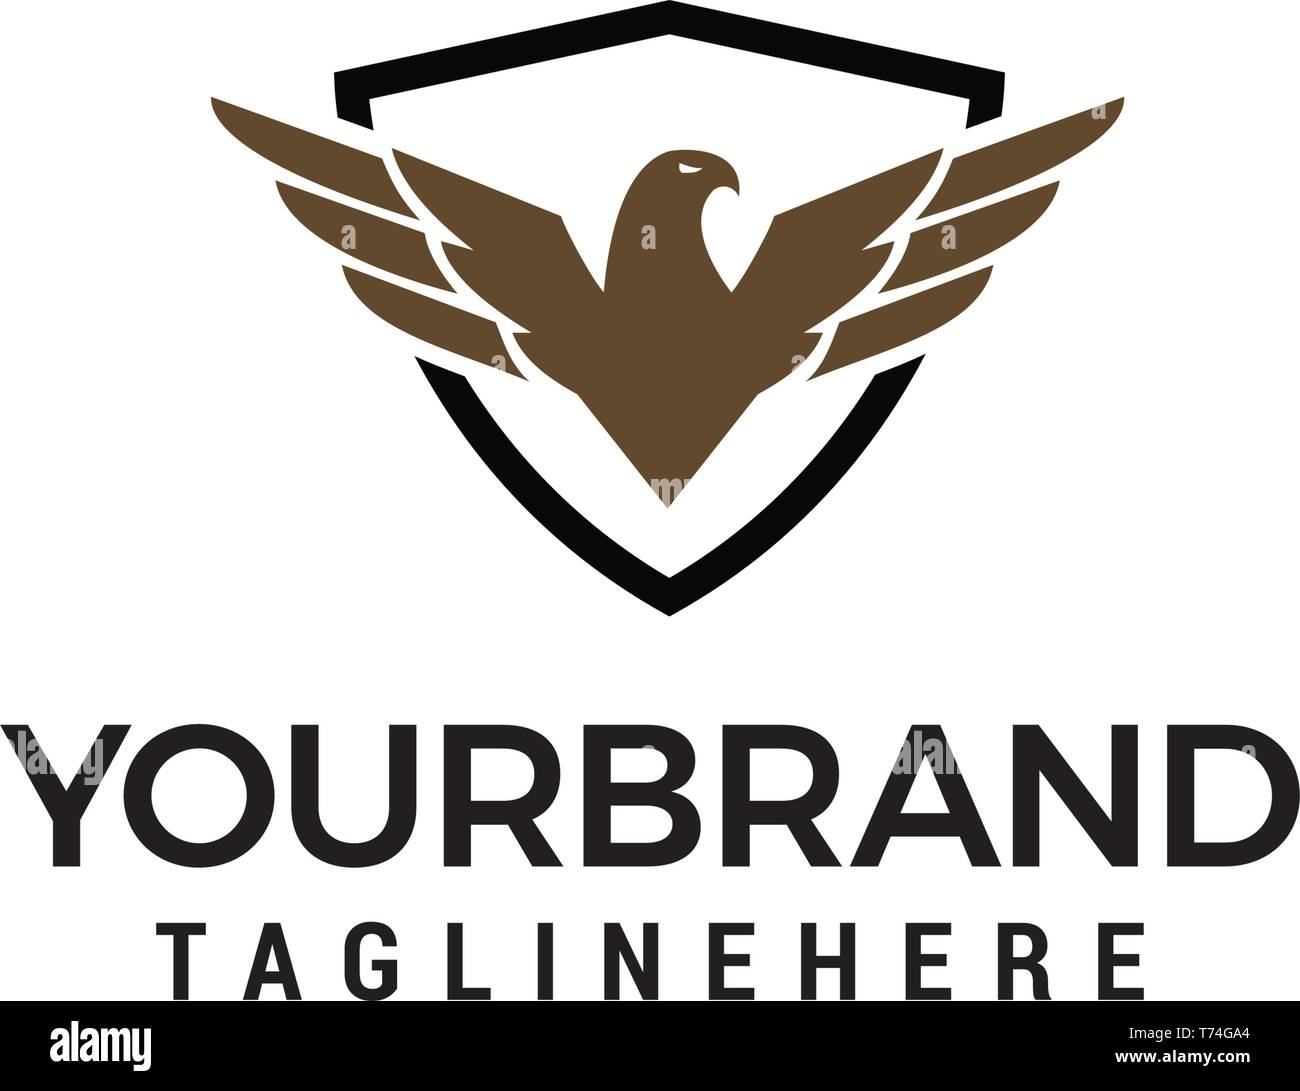 eagle wings shield logo design concept template vector stock vector image art alamy https www alamy com eagle wings shield logo design concept template vector image245348380 html